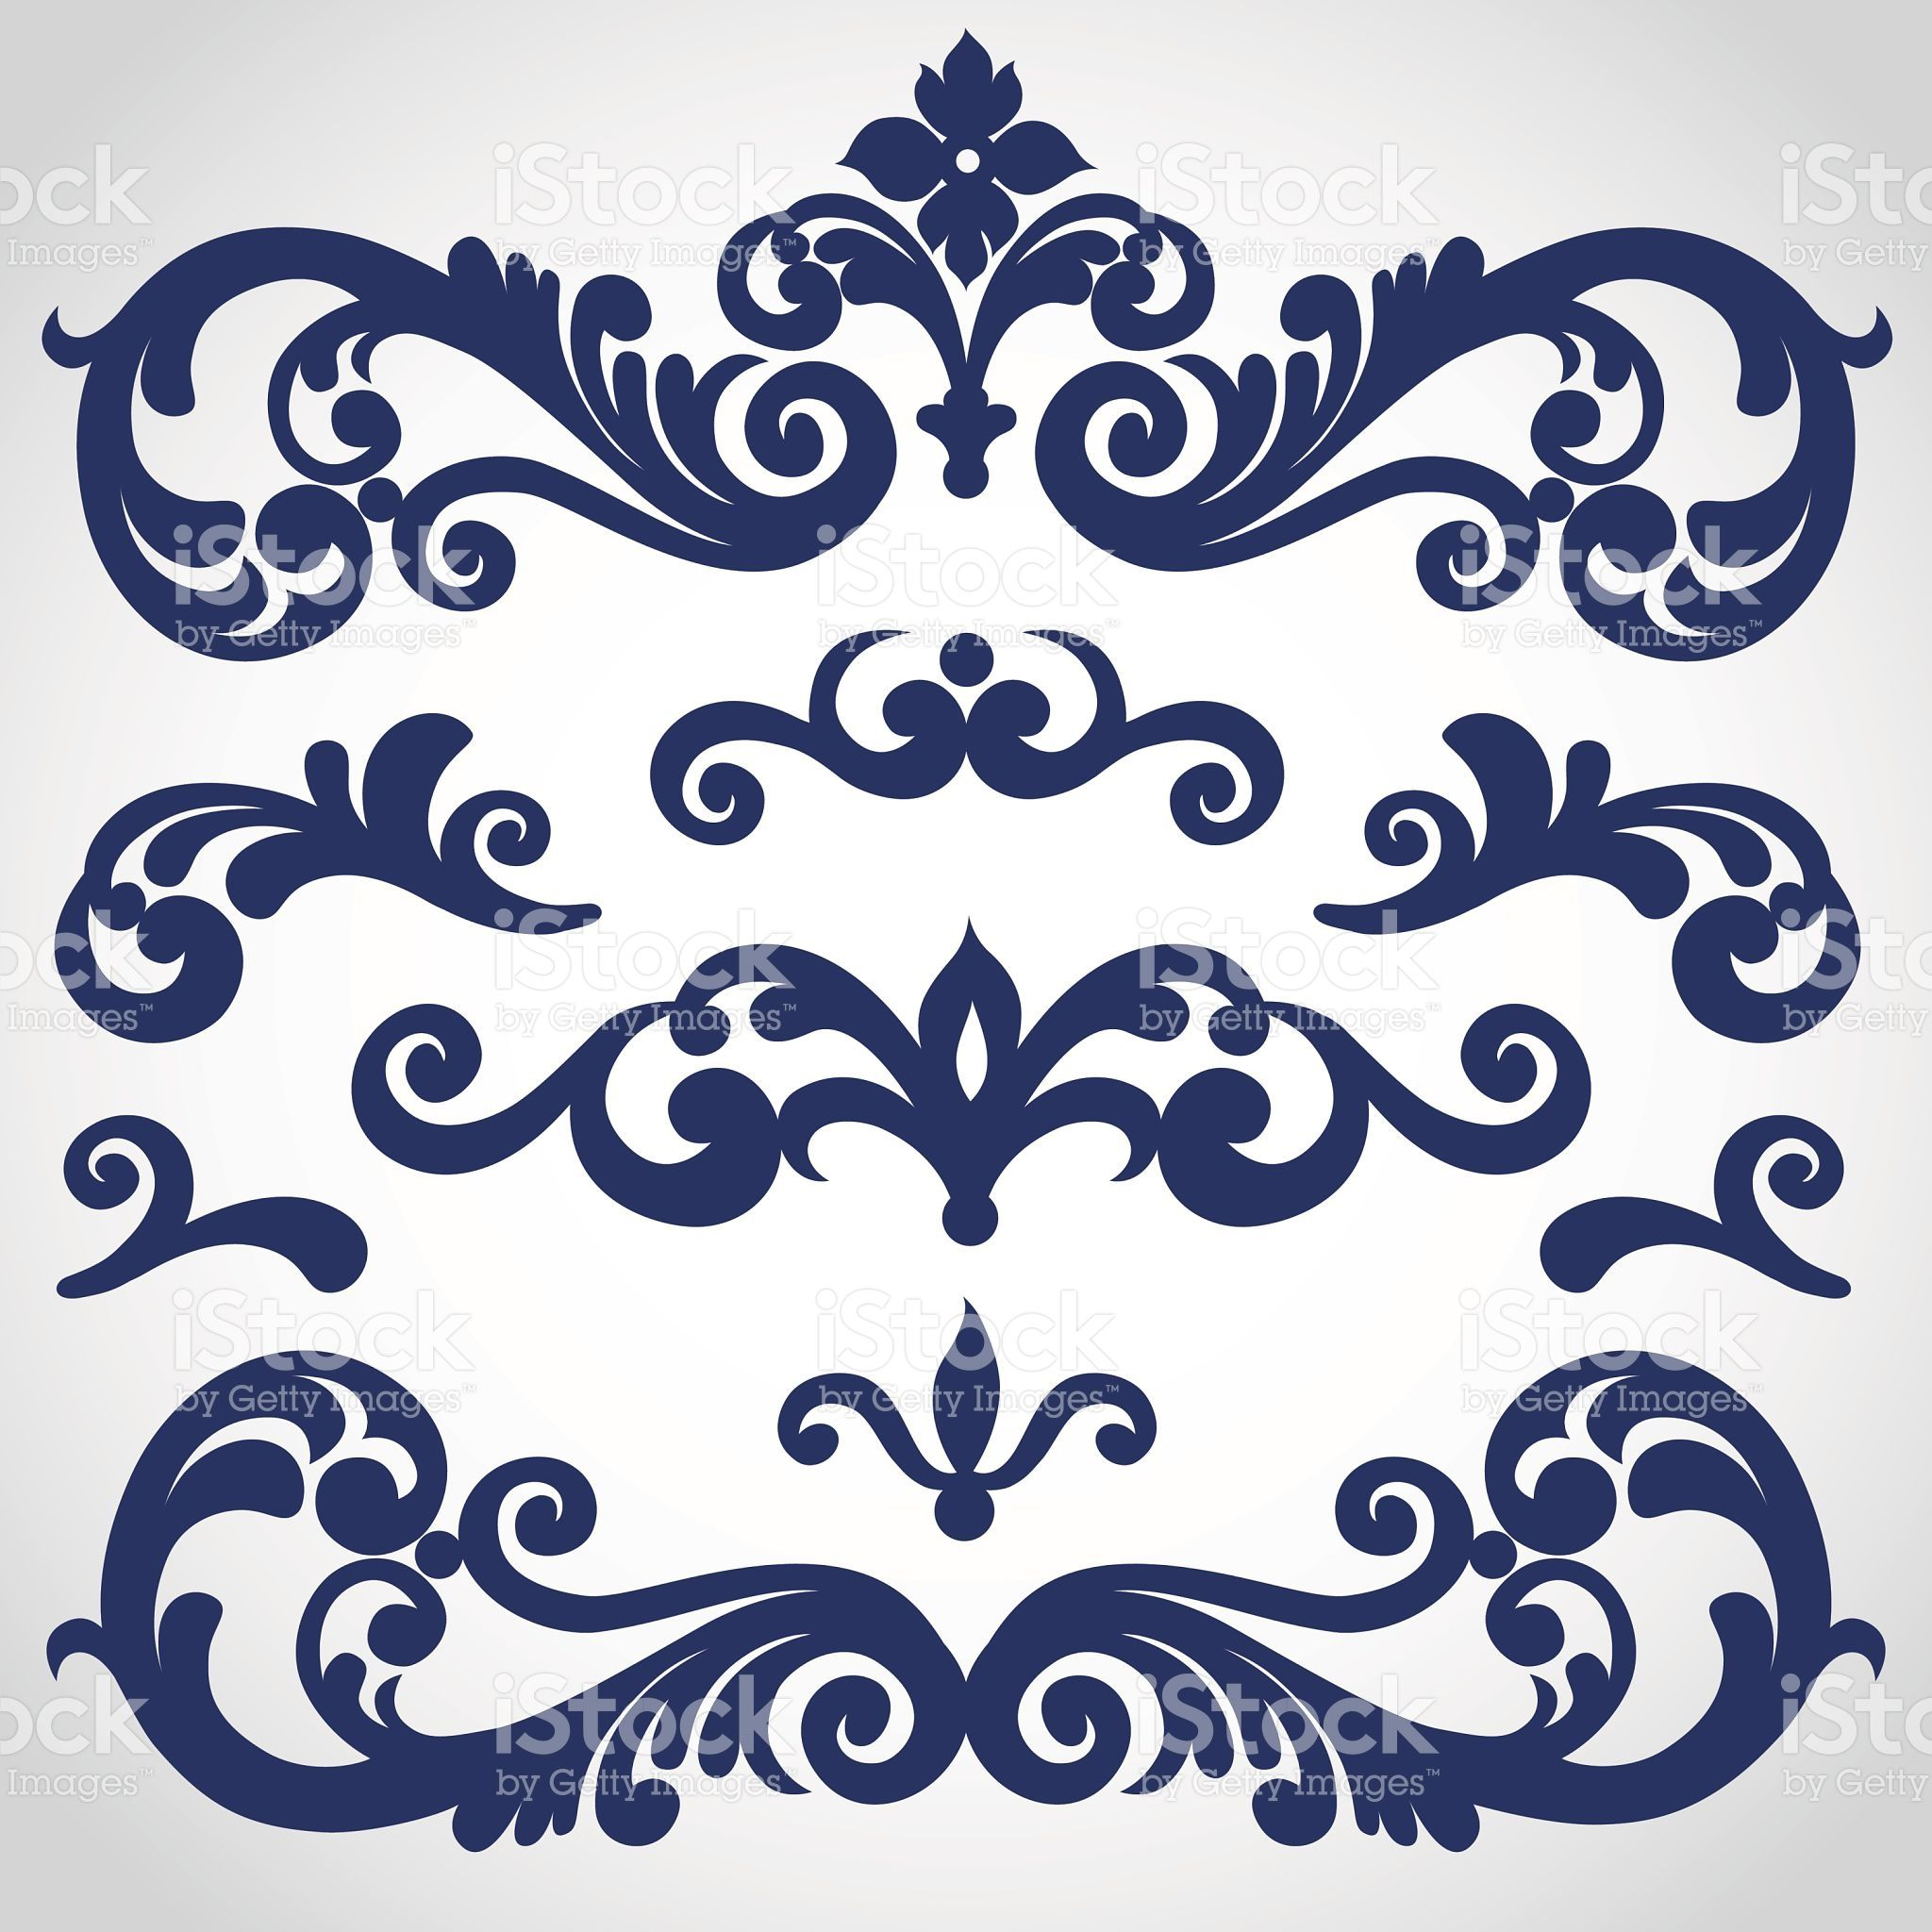 Vector Set With Ornament In Victorian Style Ornate Elements For